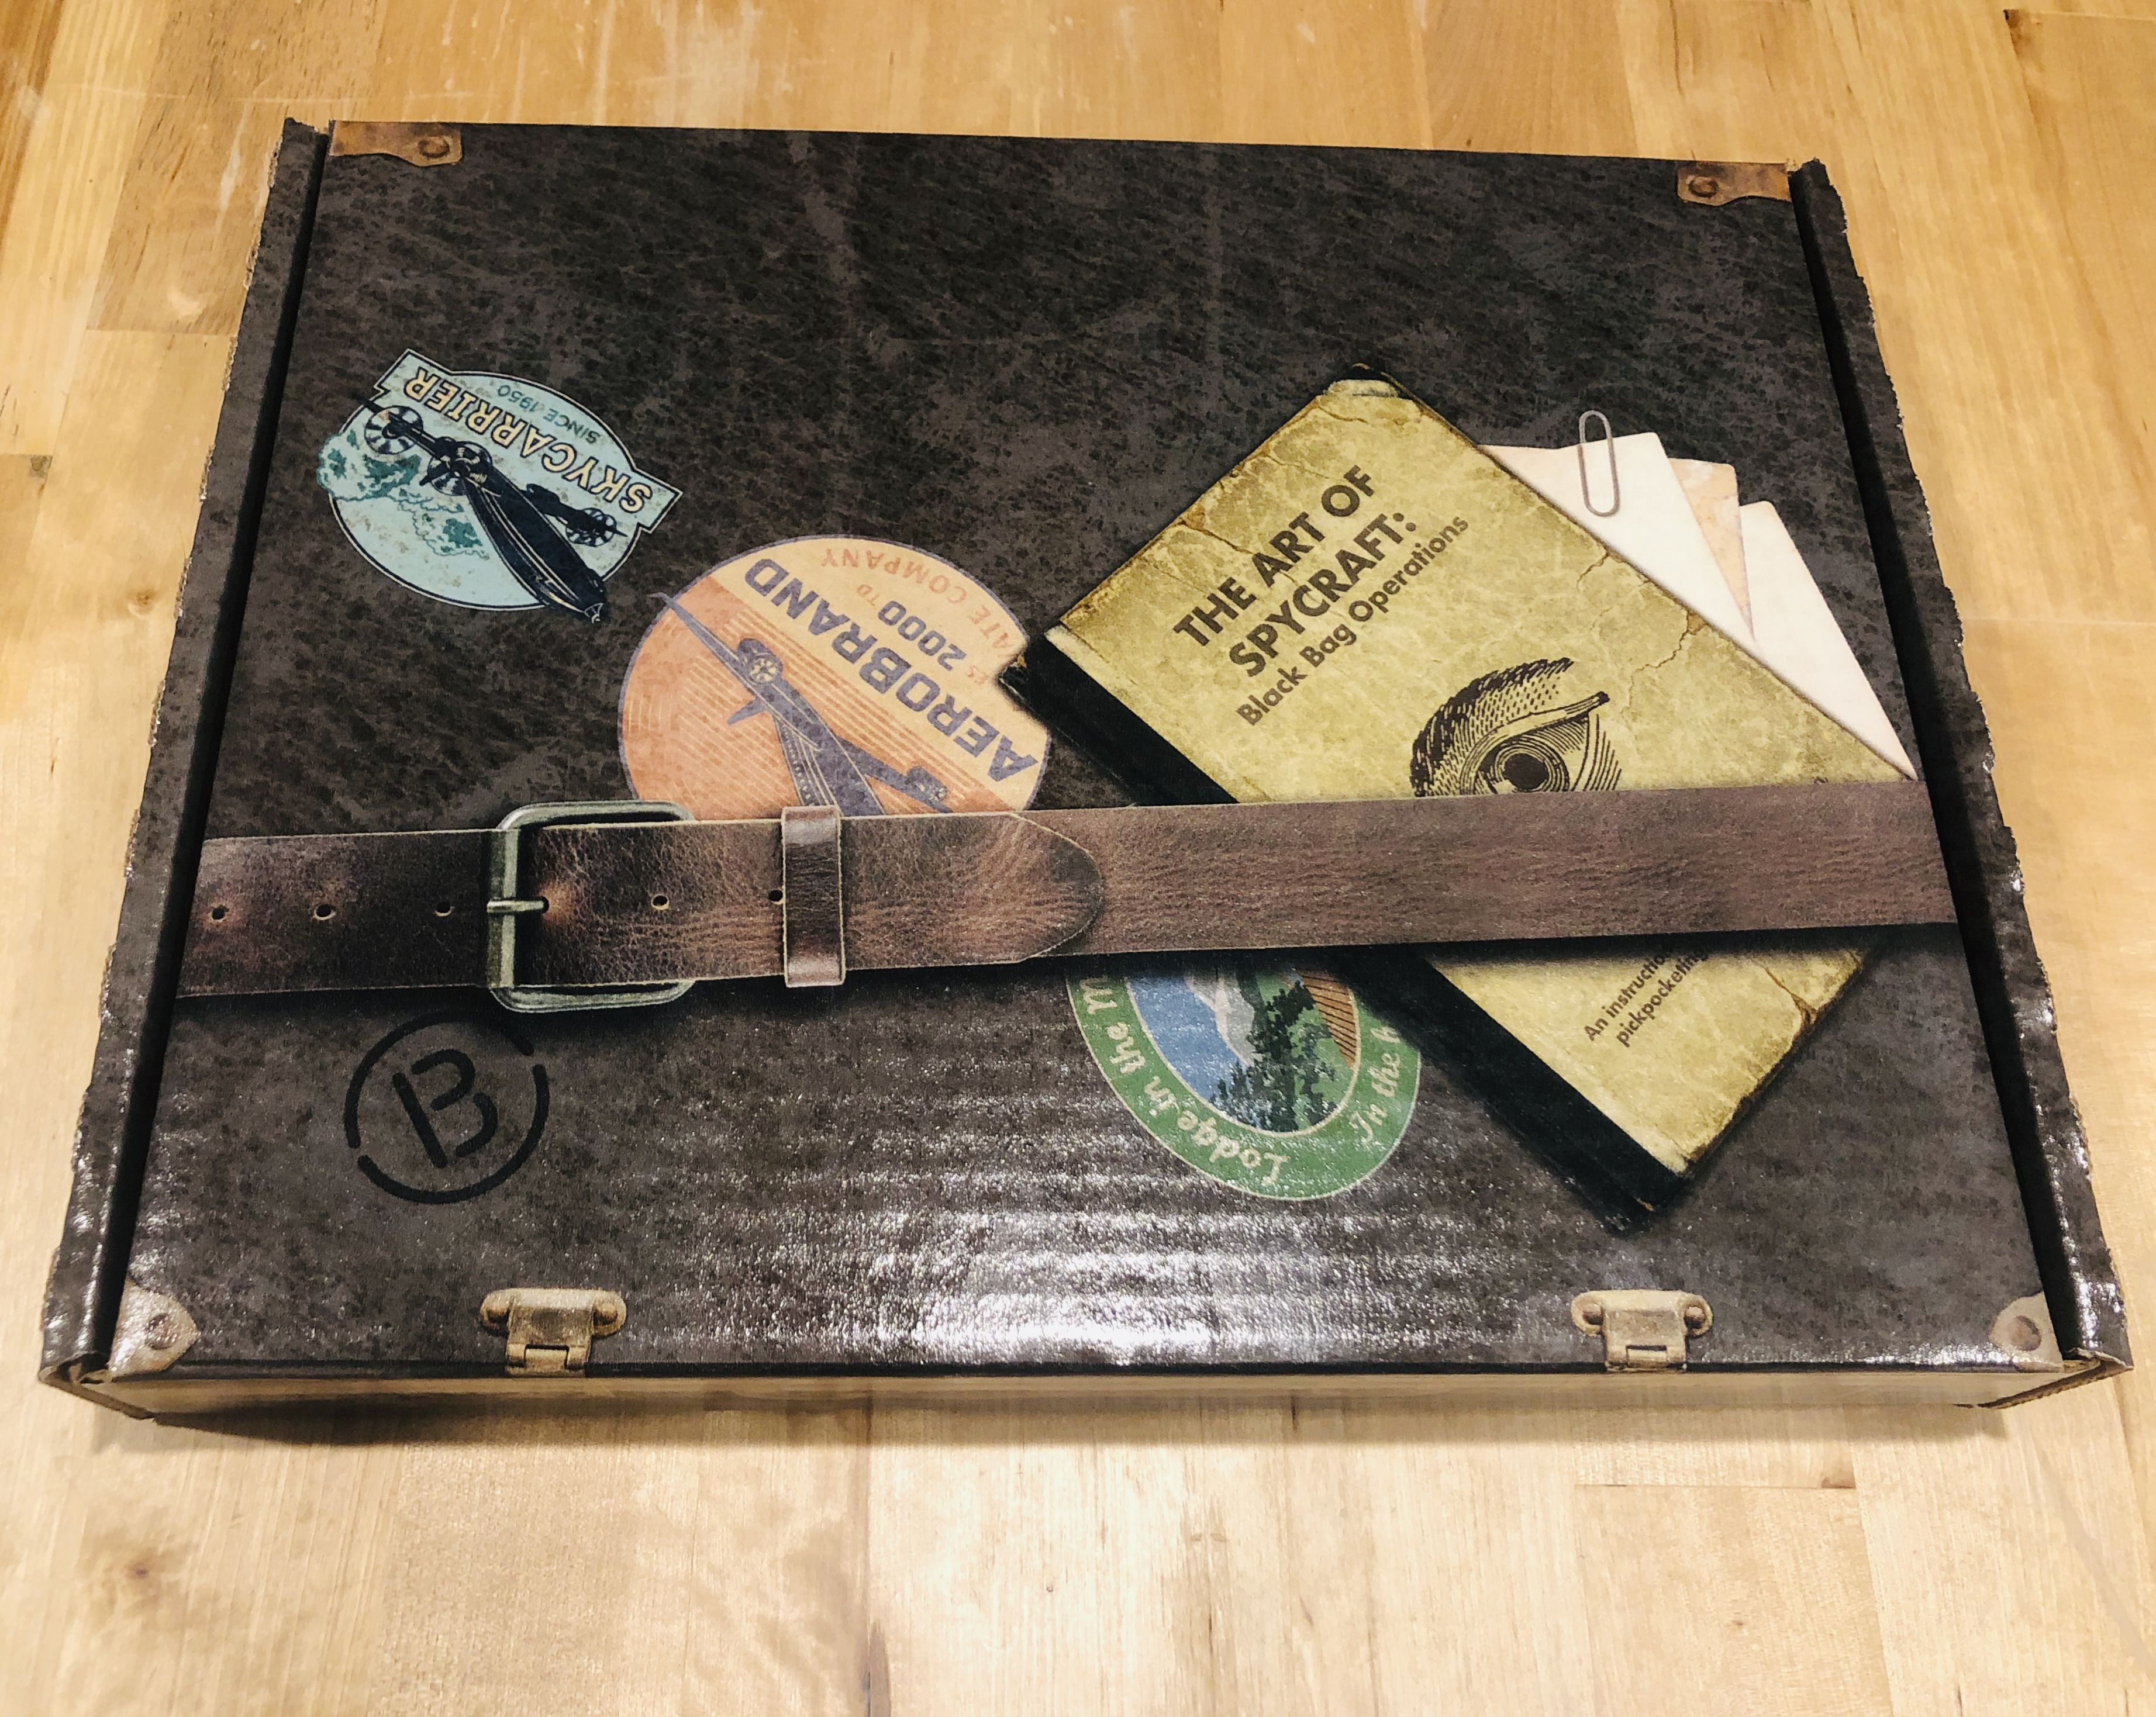 A full review of Dispatch I, Spy Monthly subscription box